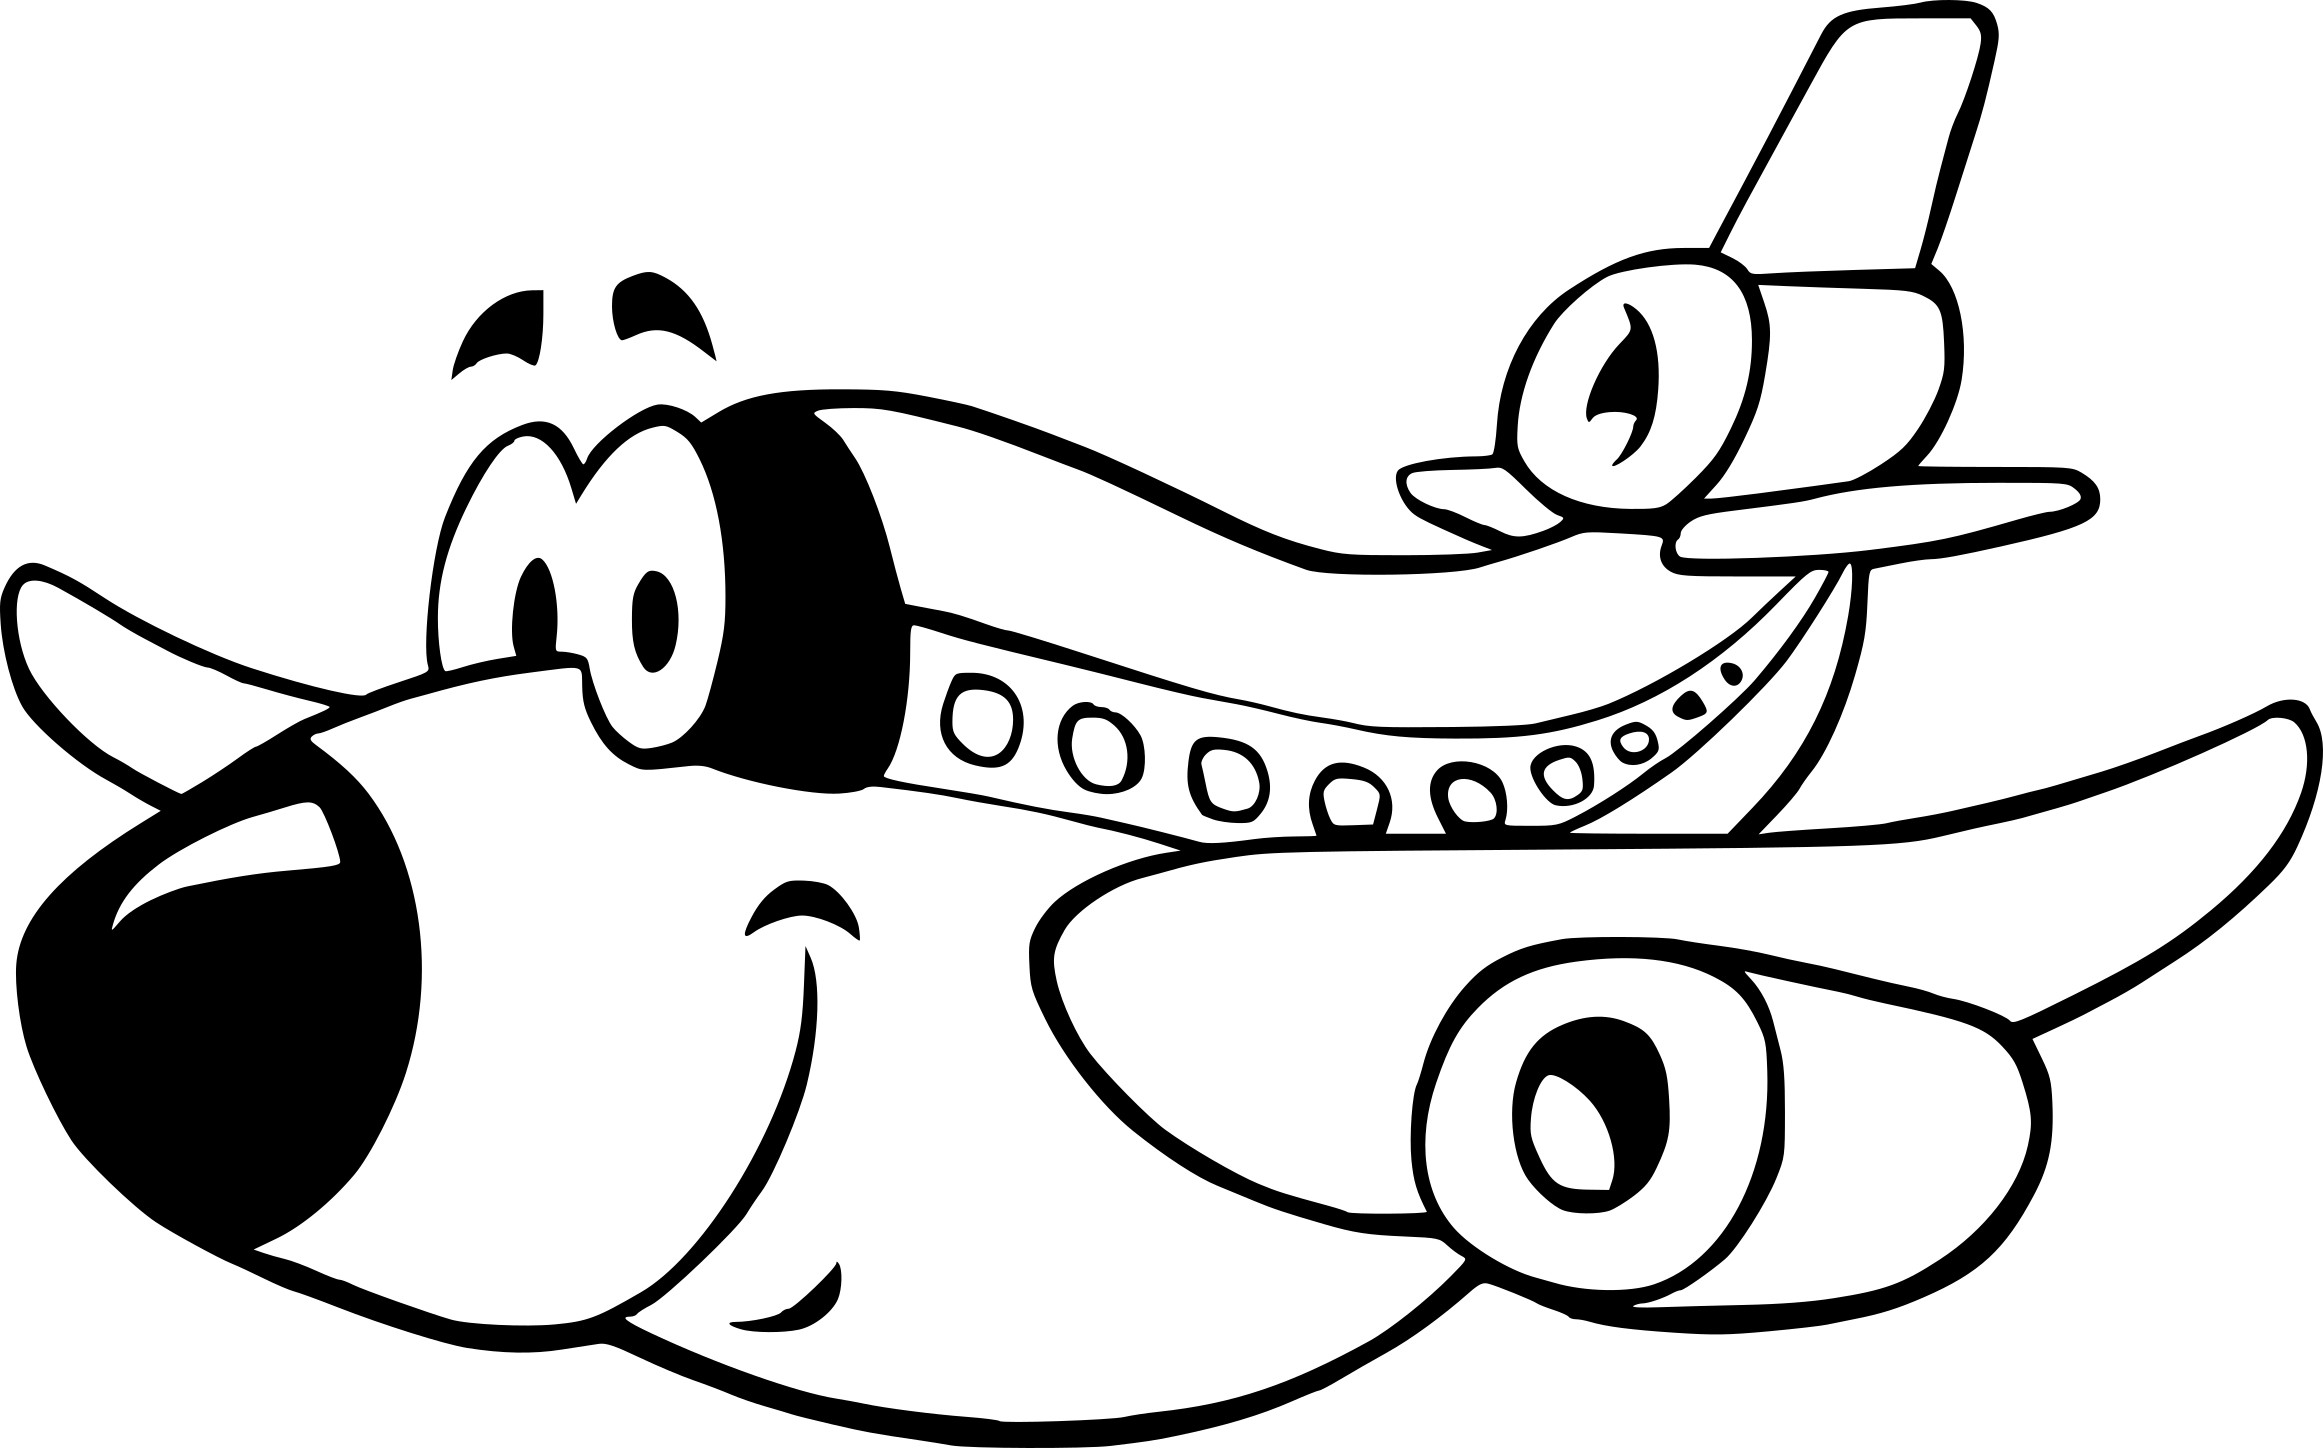 Coloriage avion enfant imprimer - Dessin d avion facile ...